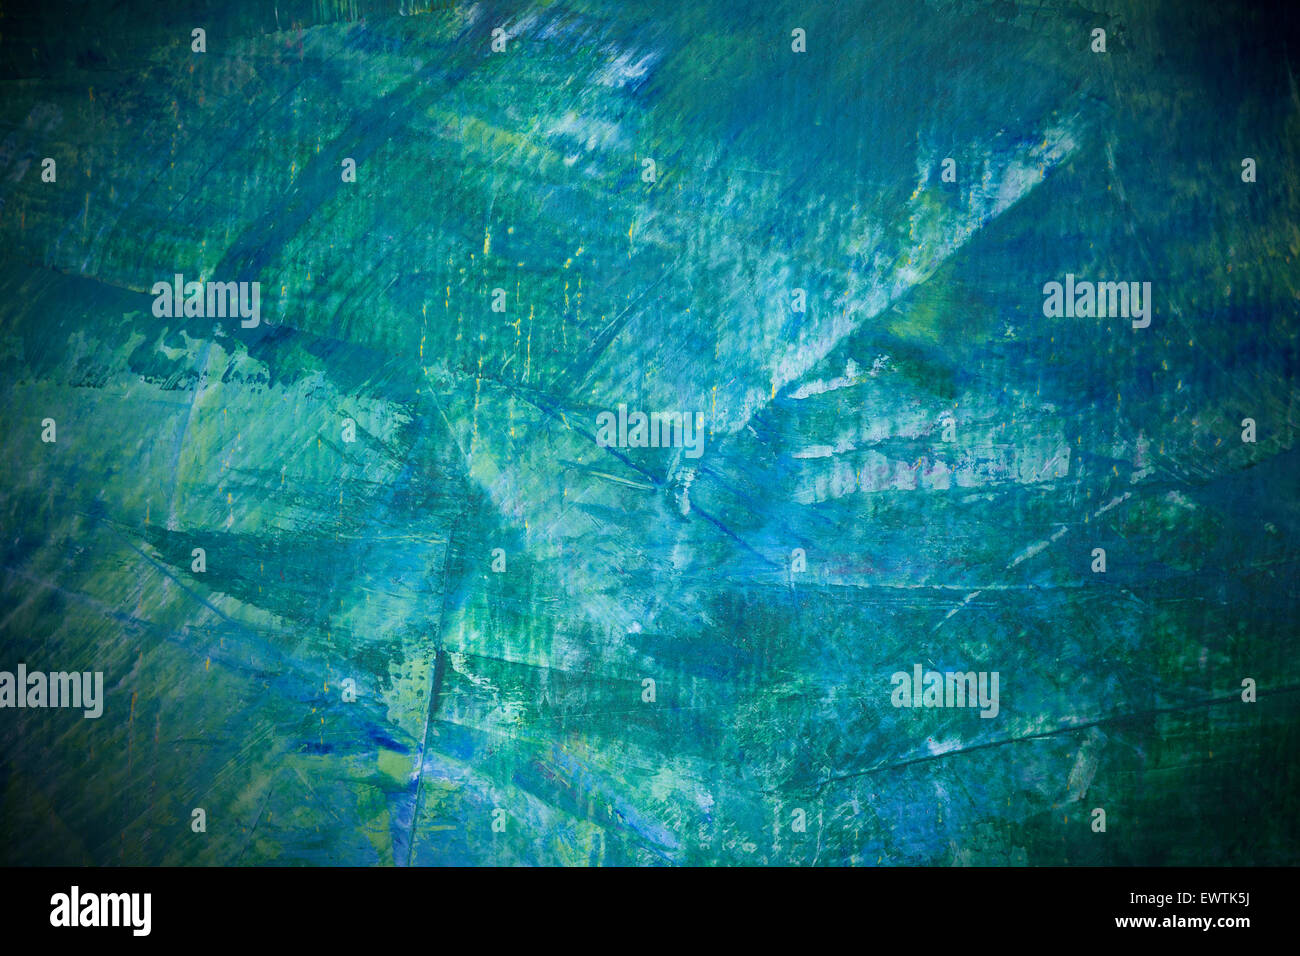 multicolored abstract background or rough pattern canvas texture - Stock Image